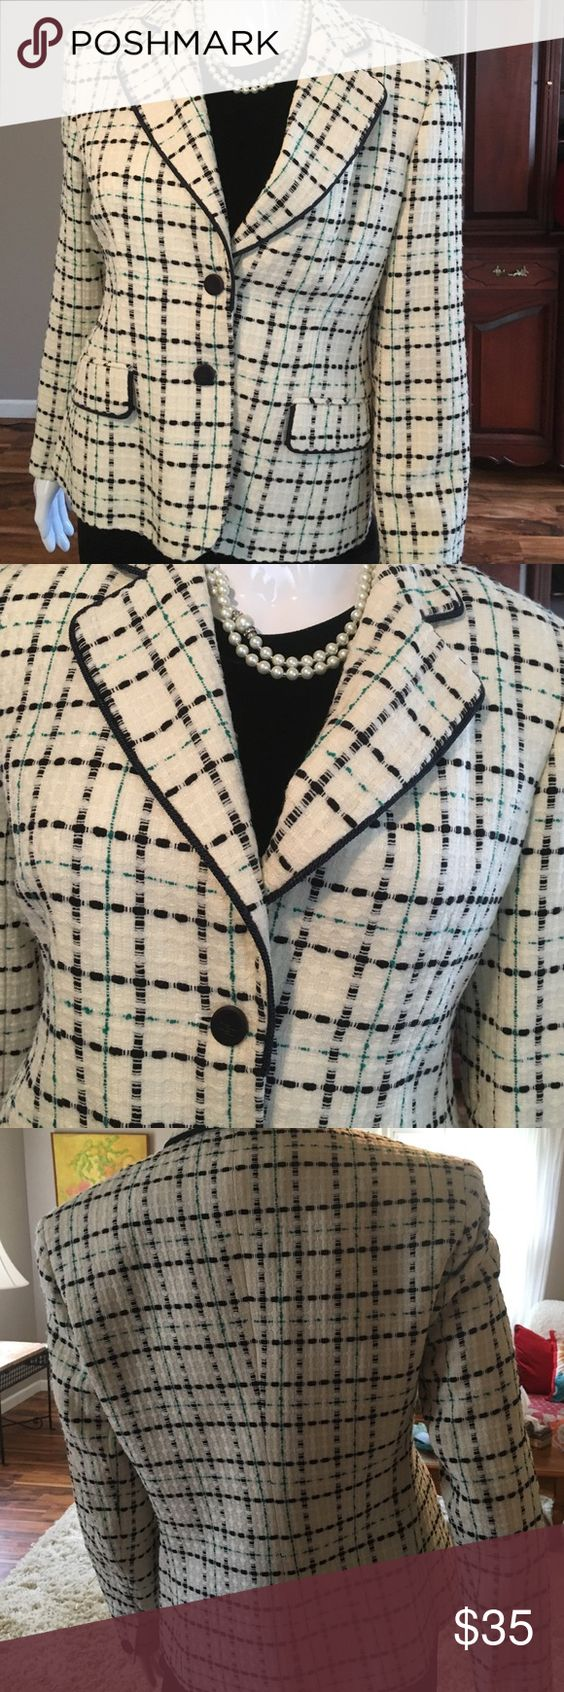 Rena Rowan blazer This lovely blazer is in prestine condition, great for all seasons, it's winter white w black and greens sewed in stripes, very well made . Bundle and save 🌸🌸 rena rowan Other